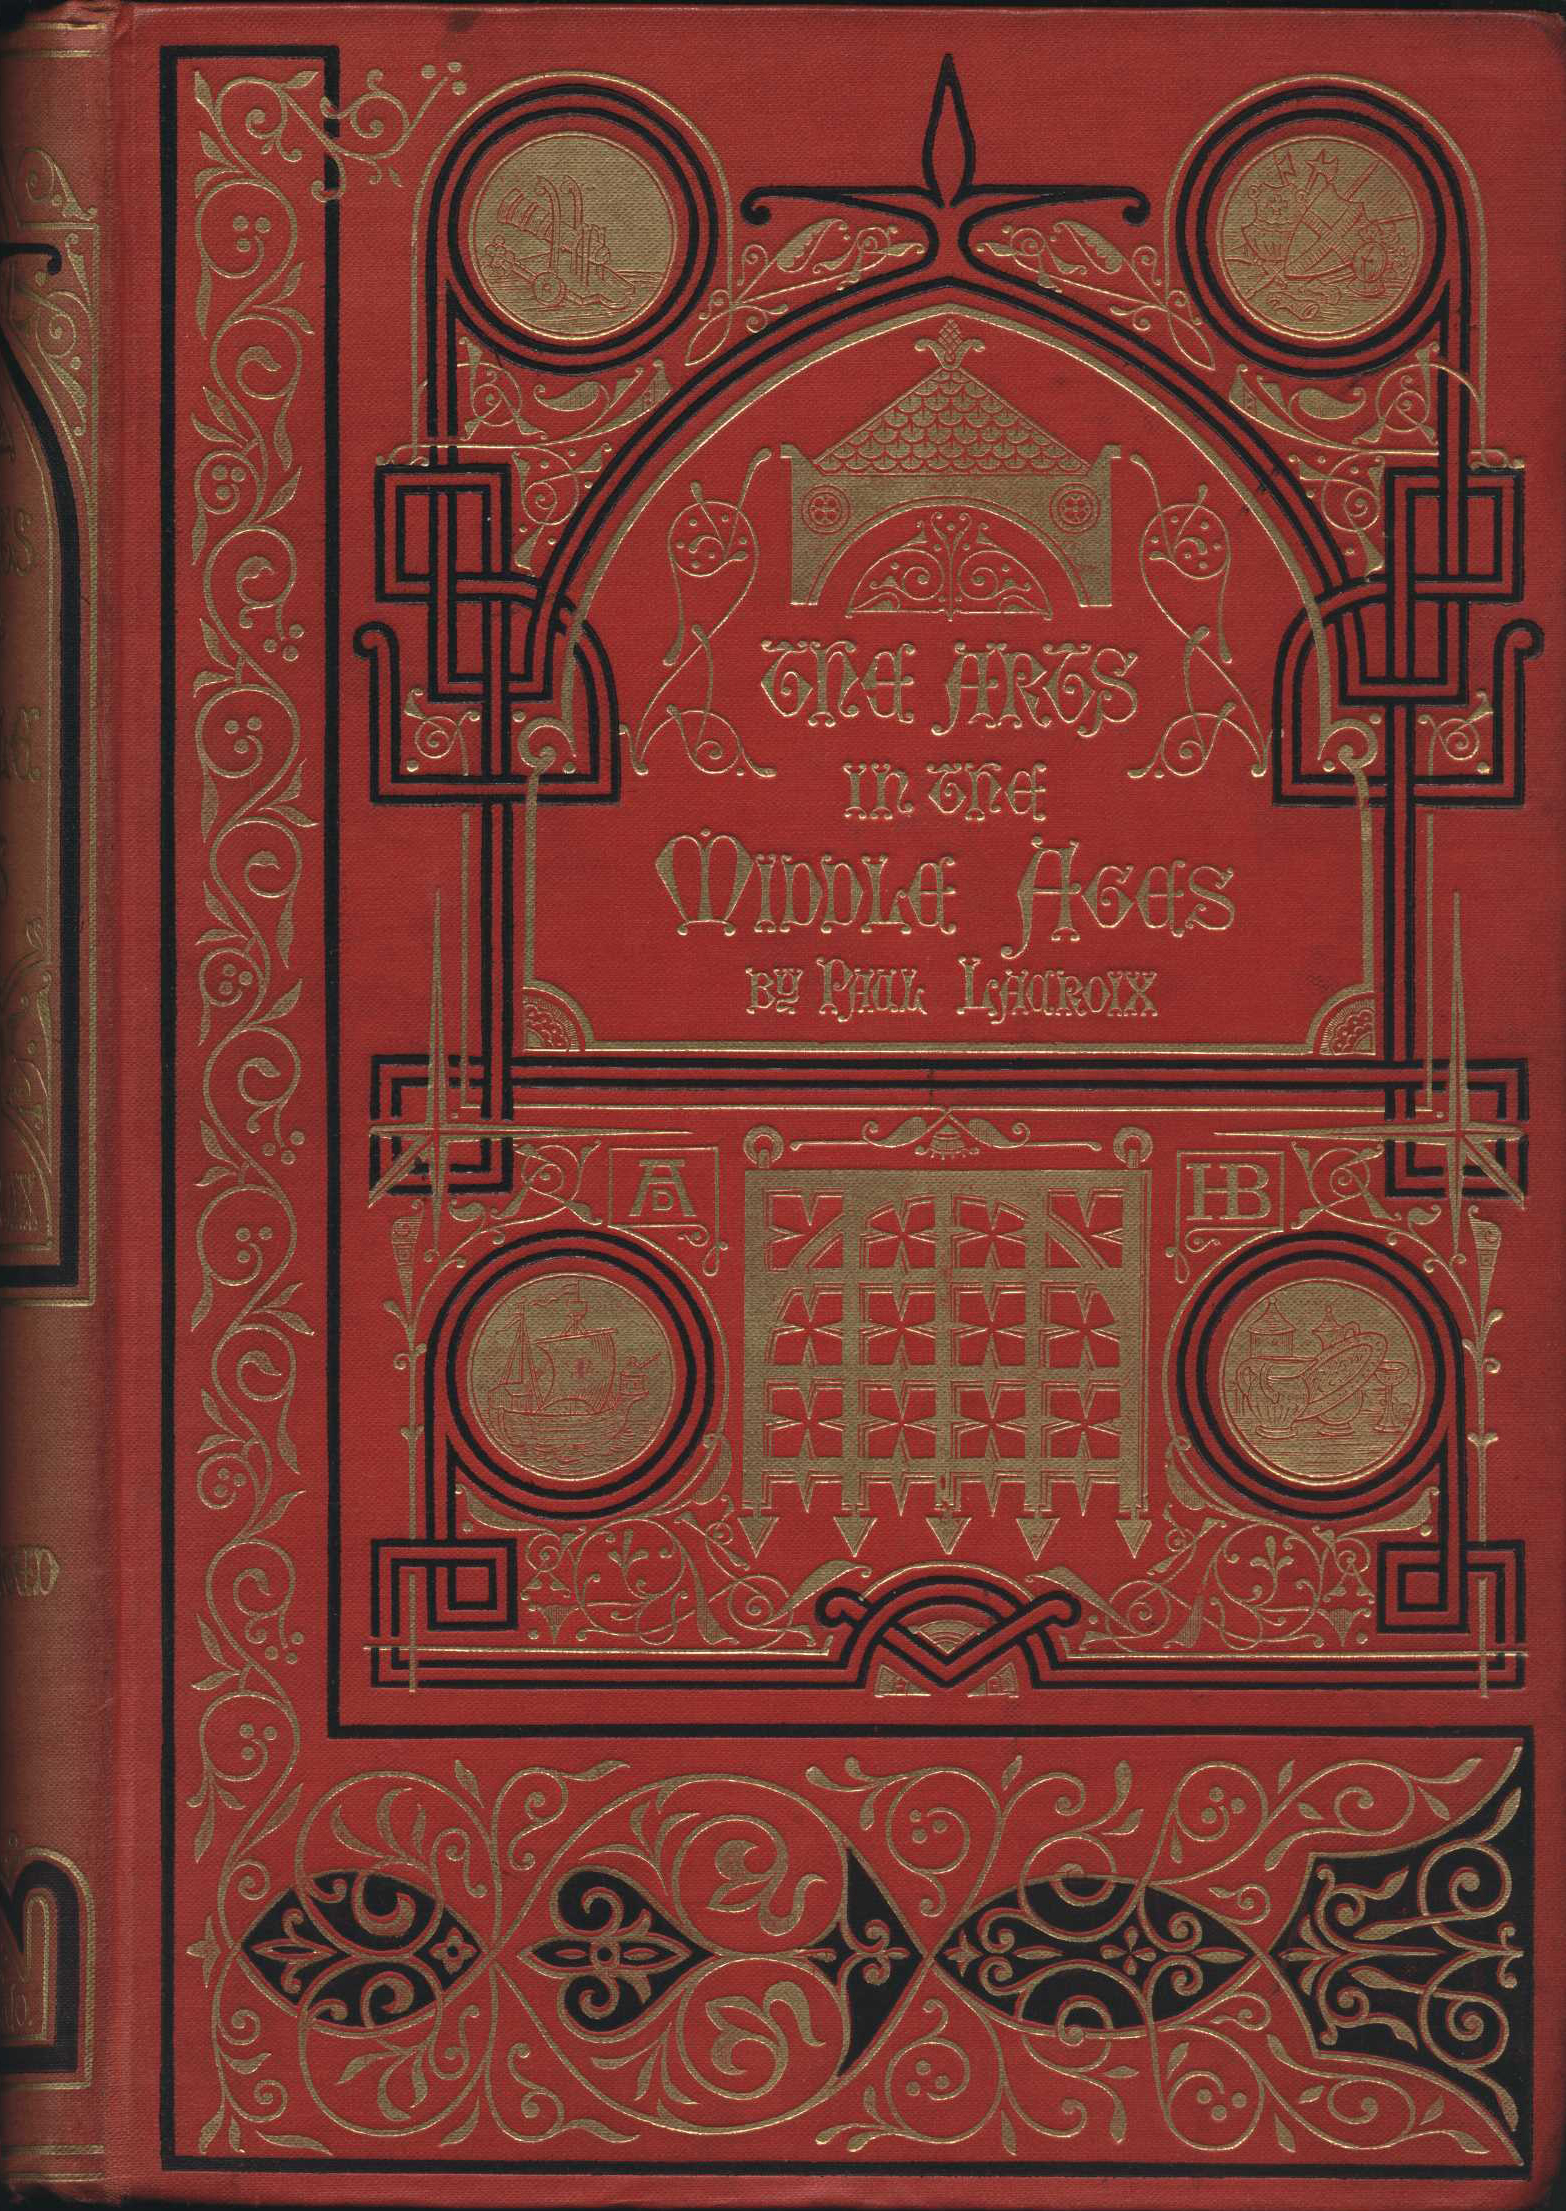 Paul Lacroix. The arts in the Middle Ages and the Renaissance. English edition. London: J.S. Virtue & Co., [1886?]